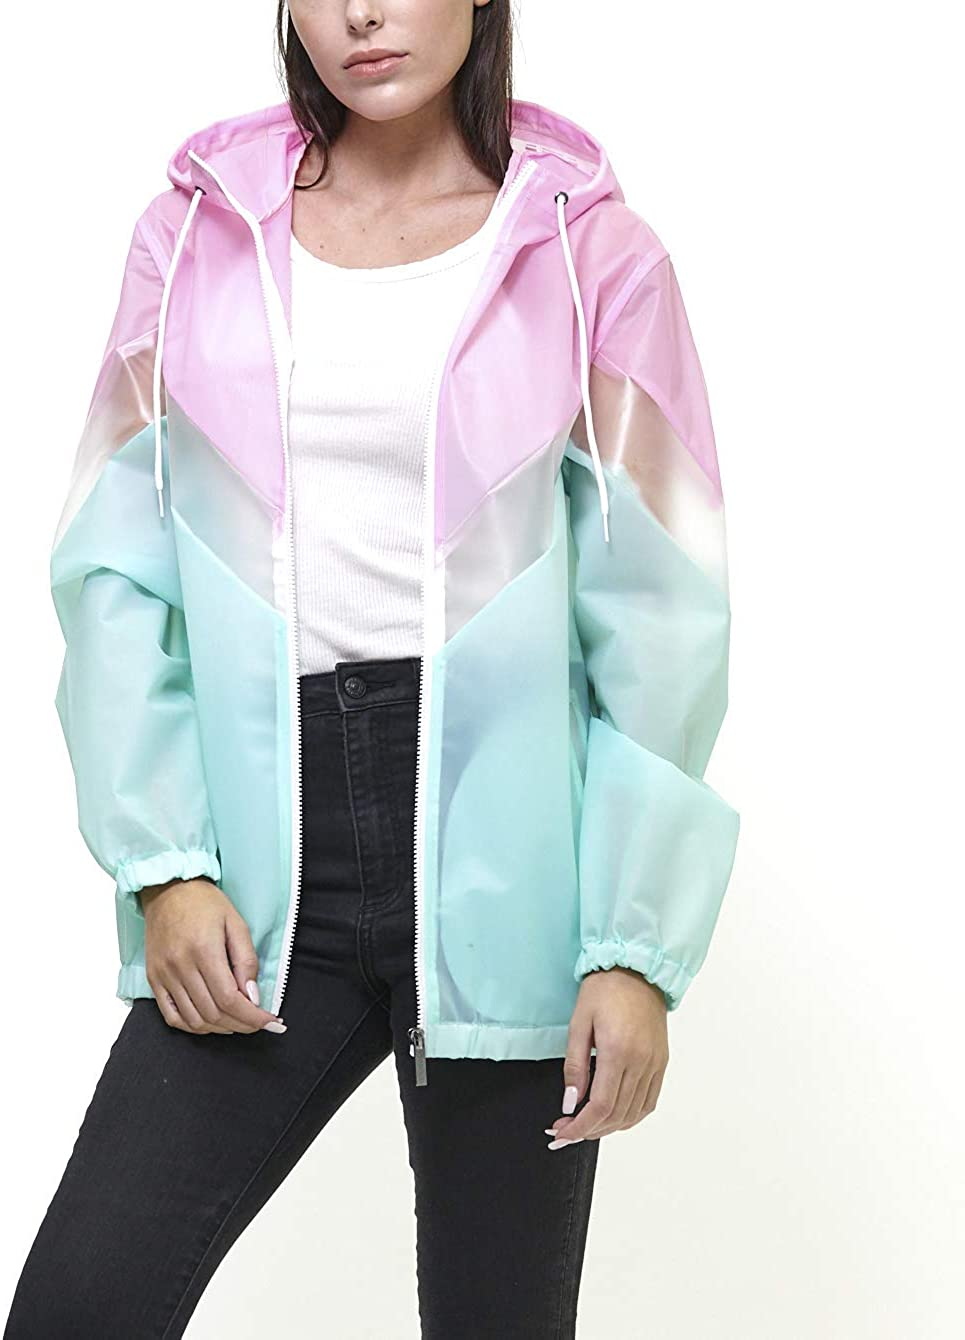 80s Windbreakers, Jackets, Coats Members Only Womens Nautical Light Weight Jacket Zipper with Hood $59.00 AT vintagedancer.com